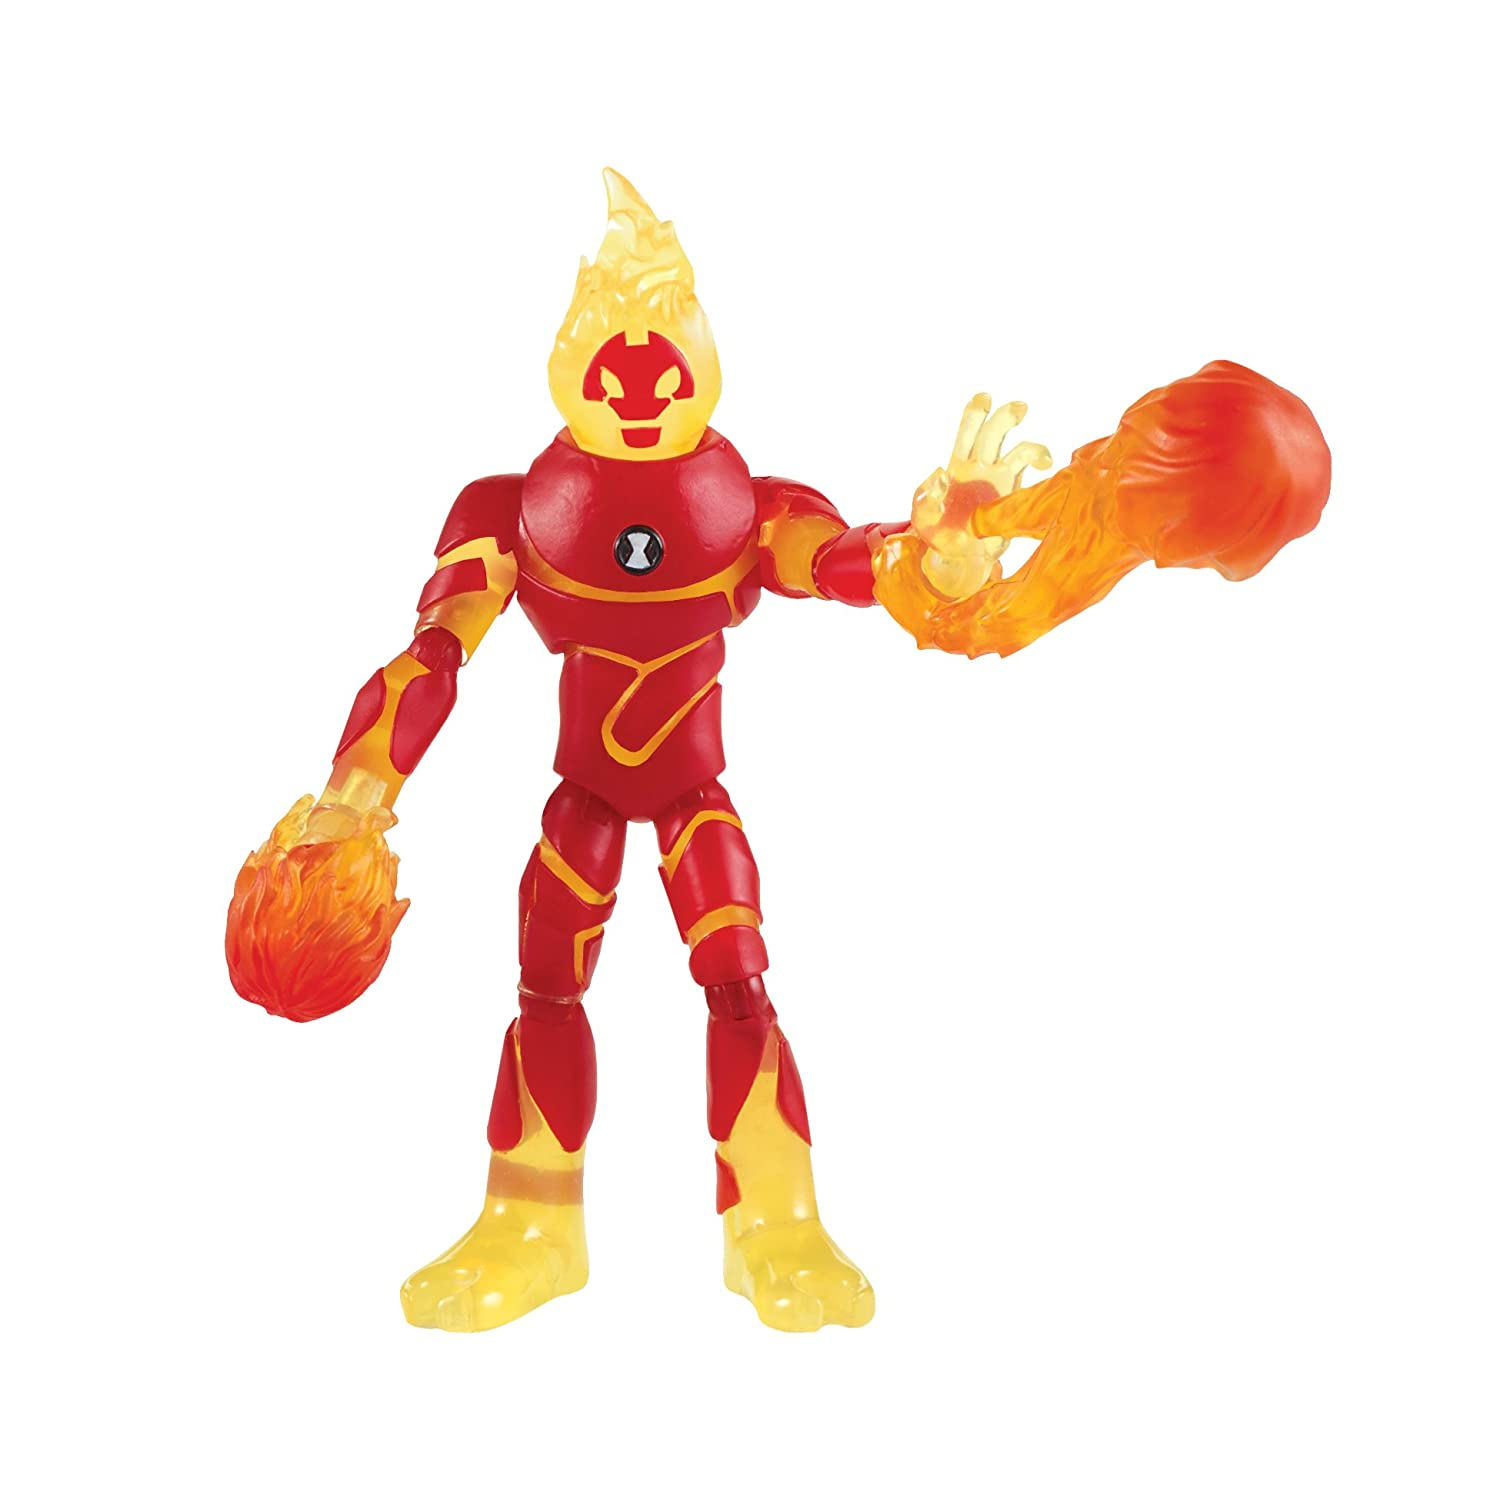 Ben 10 76102 Heatblast Basic Action Figure Playmates - Toys